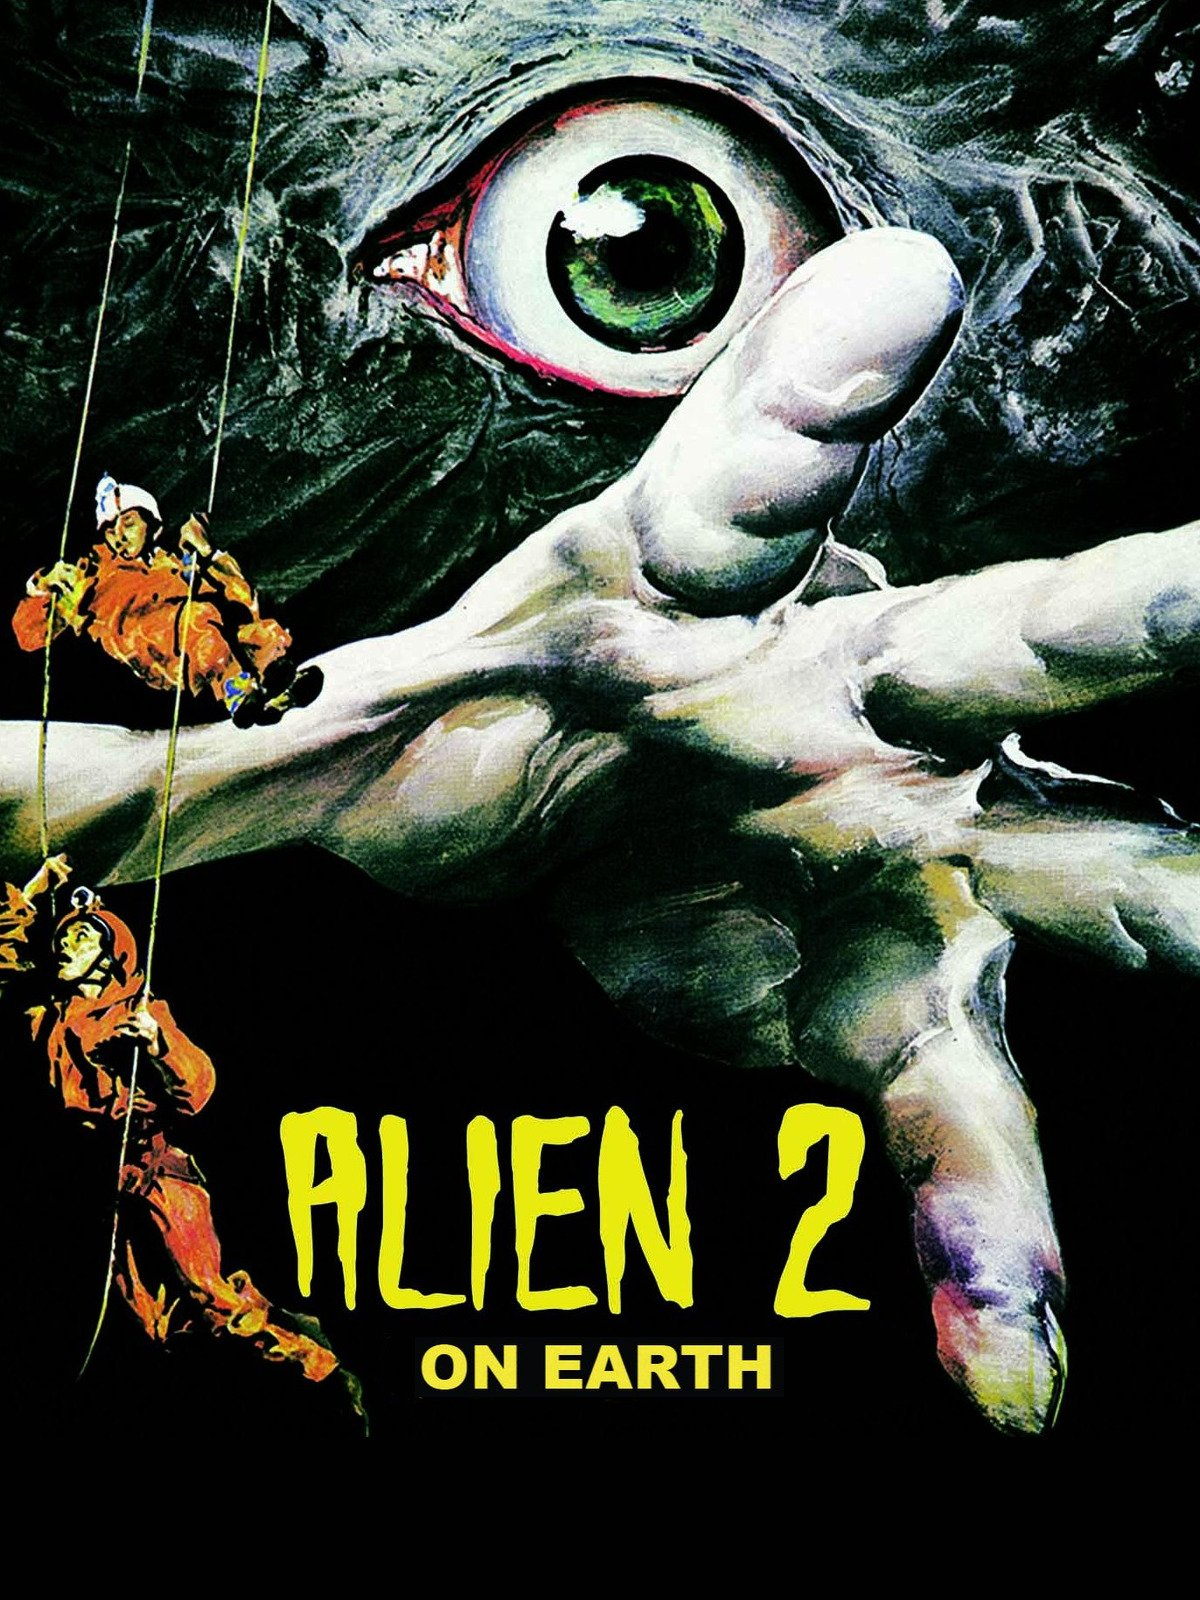 Alien 2 on Earth